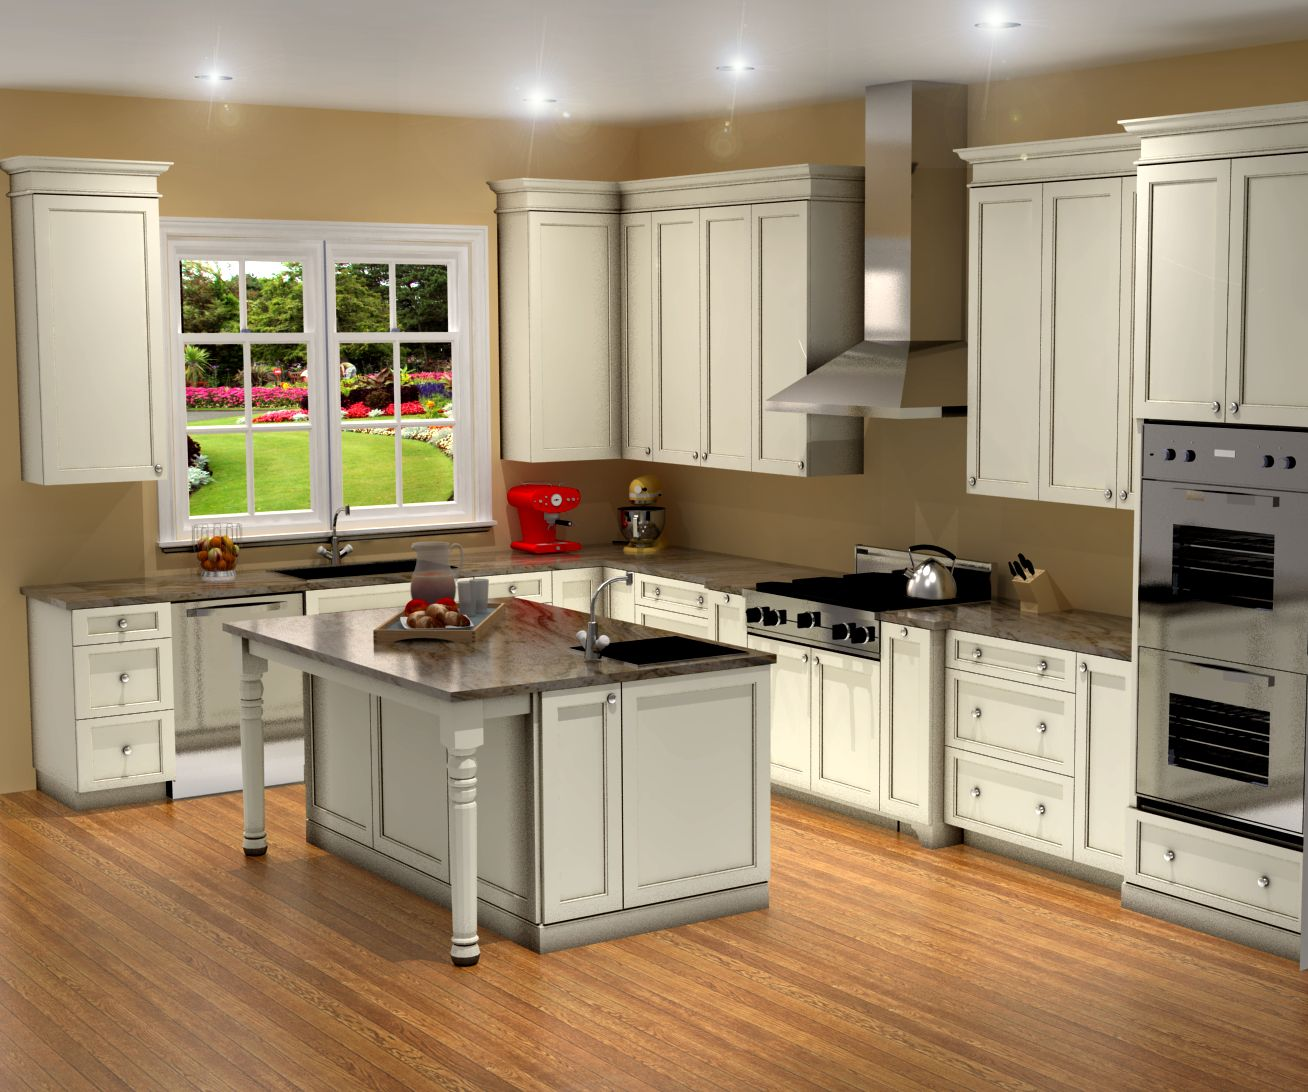 Traditional white kitchen design 3d rendering nick miller design - Pics of kitchen designs ...